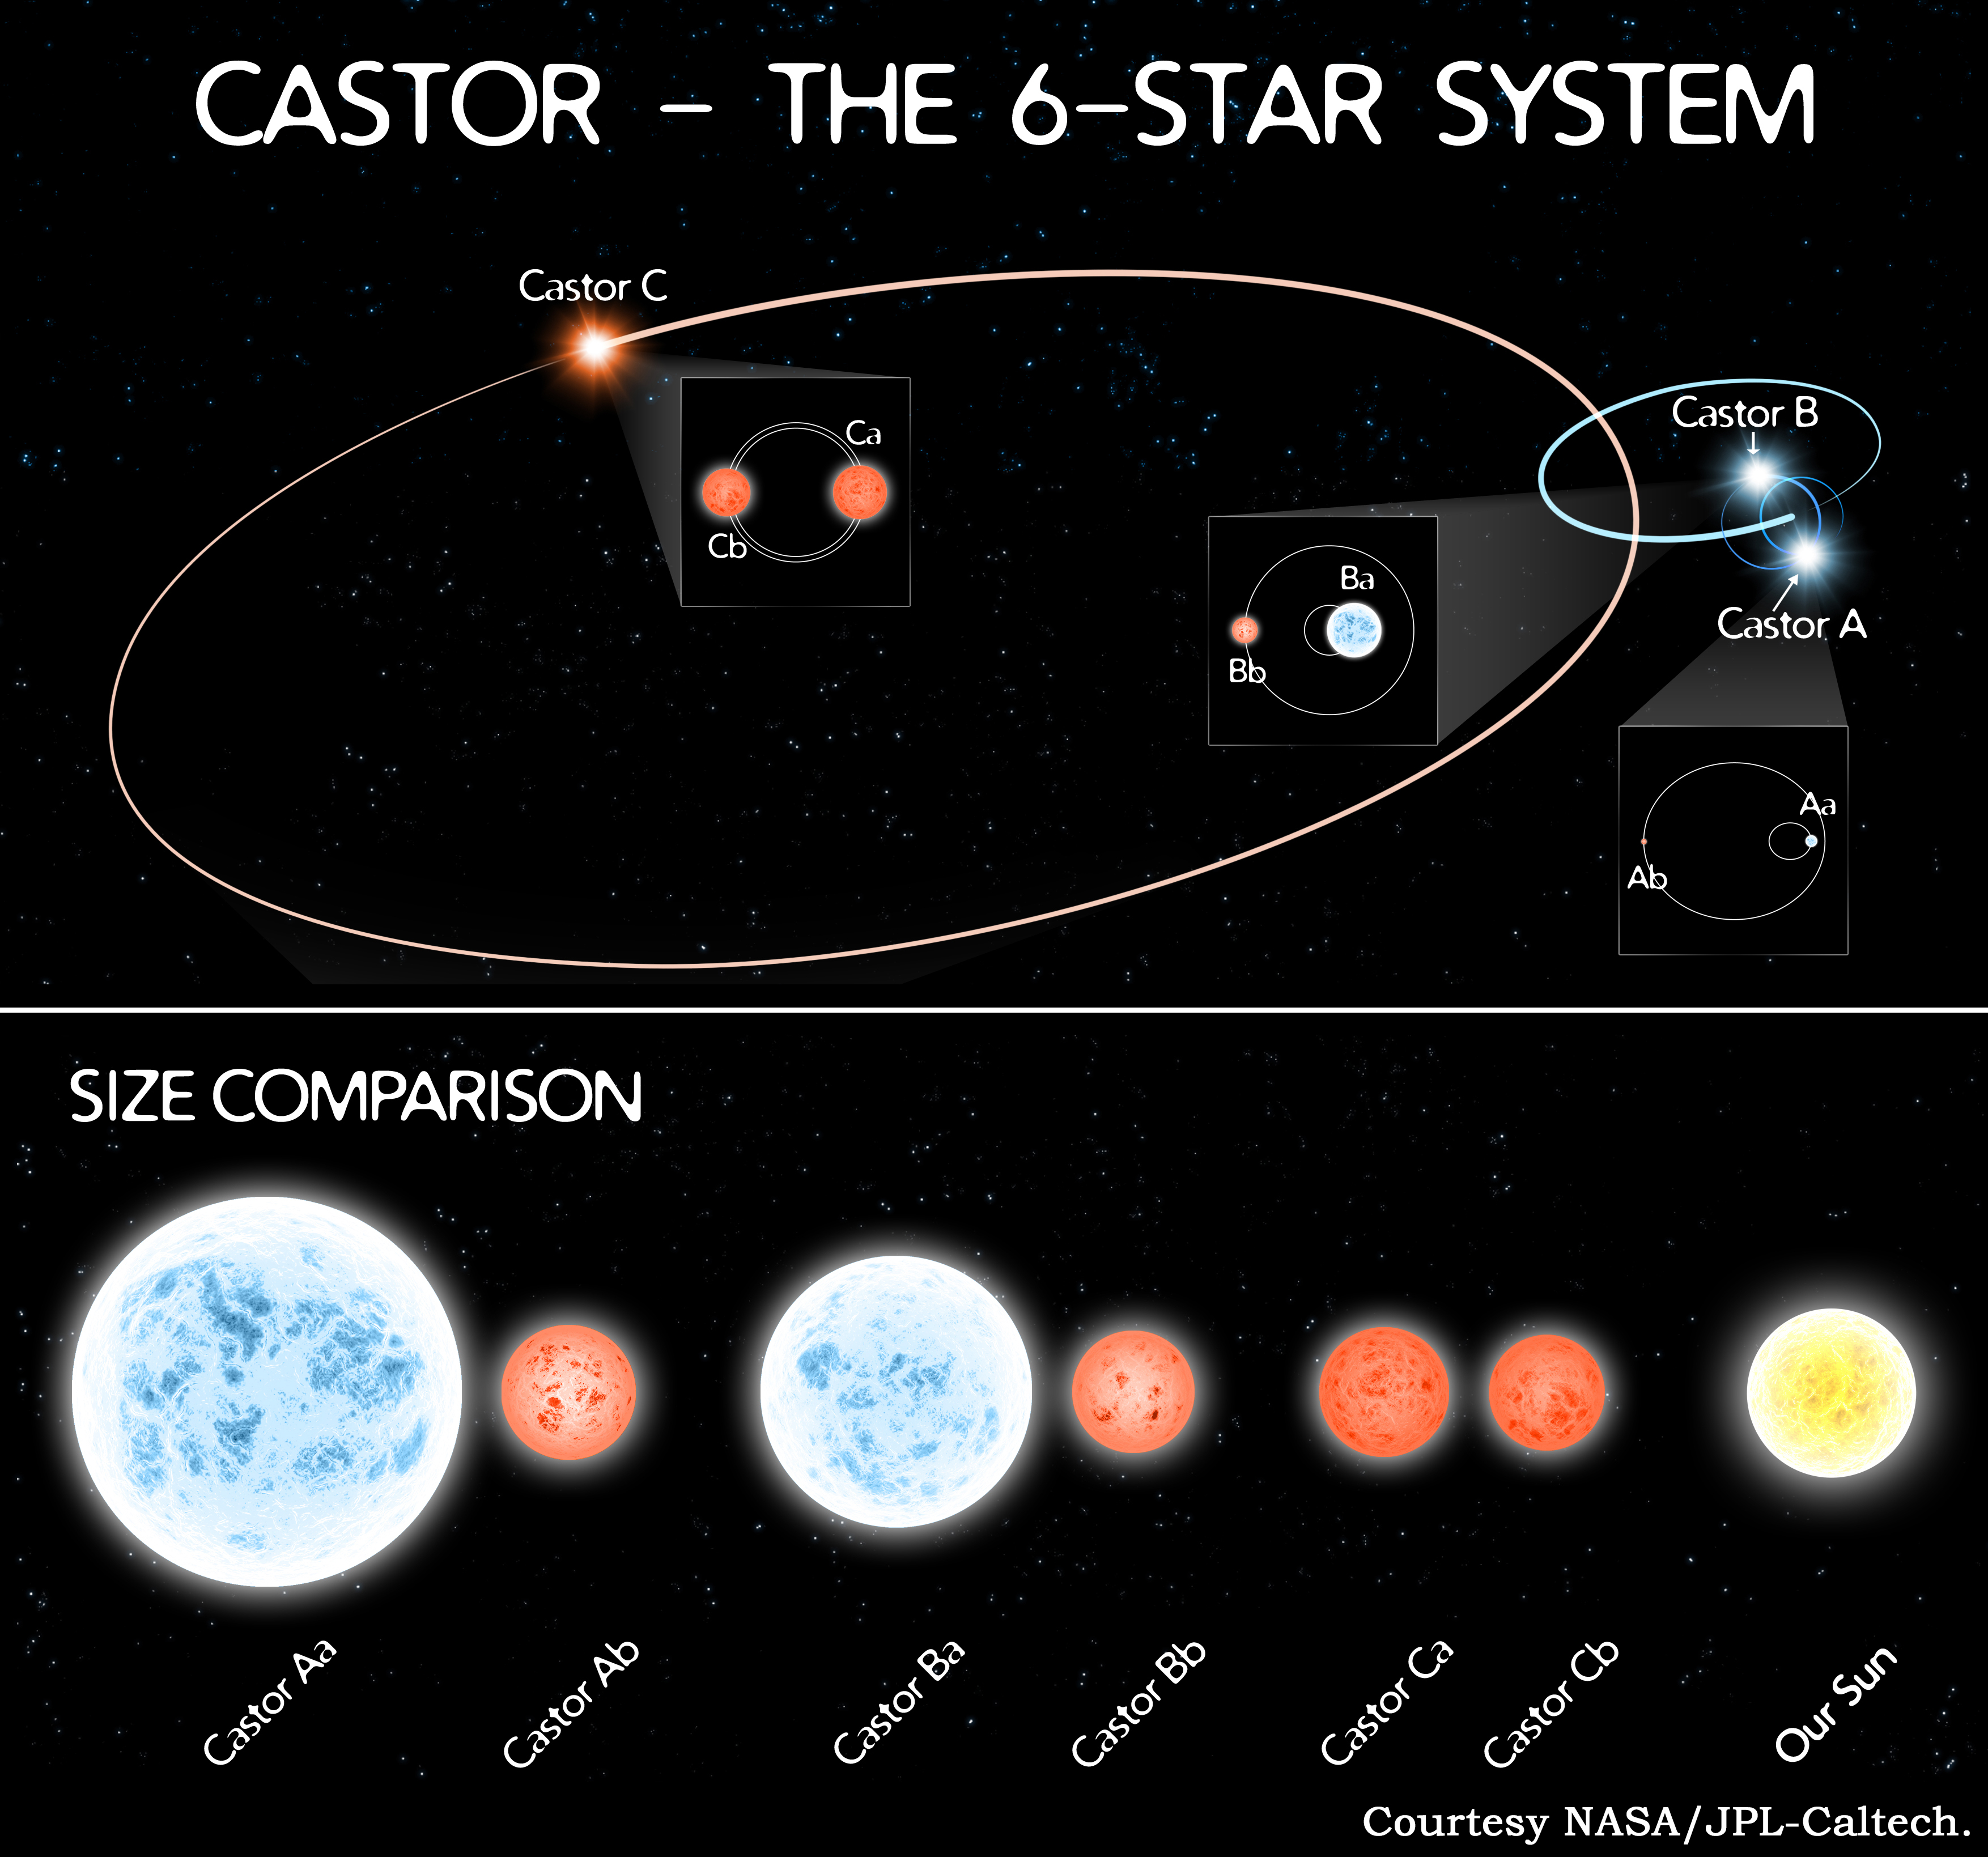 A NASA illustration shows the complex sextuple orbits of the nearby star system Castor. The newly-discovered system has a similar arrangement of stars.